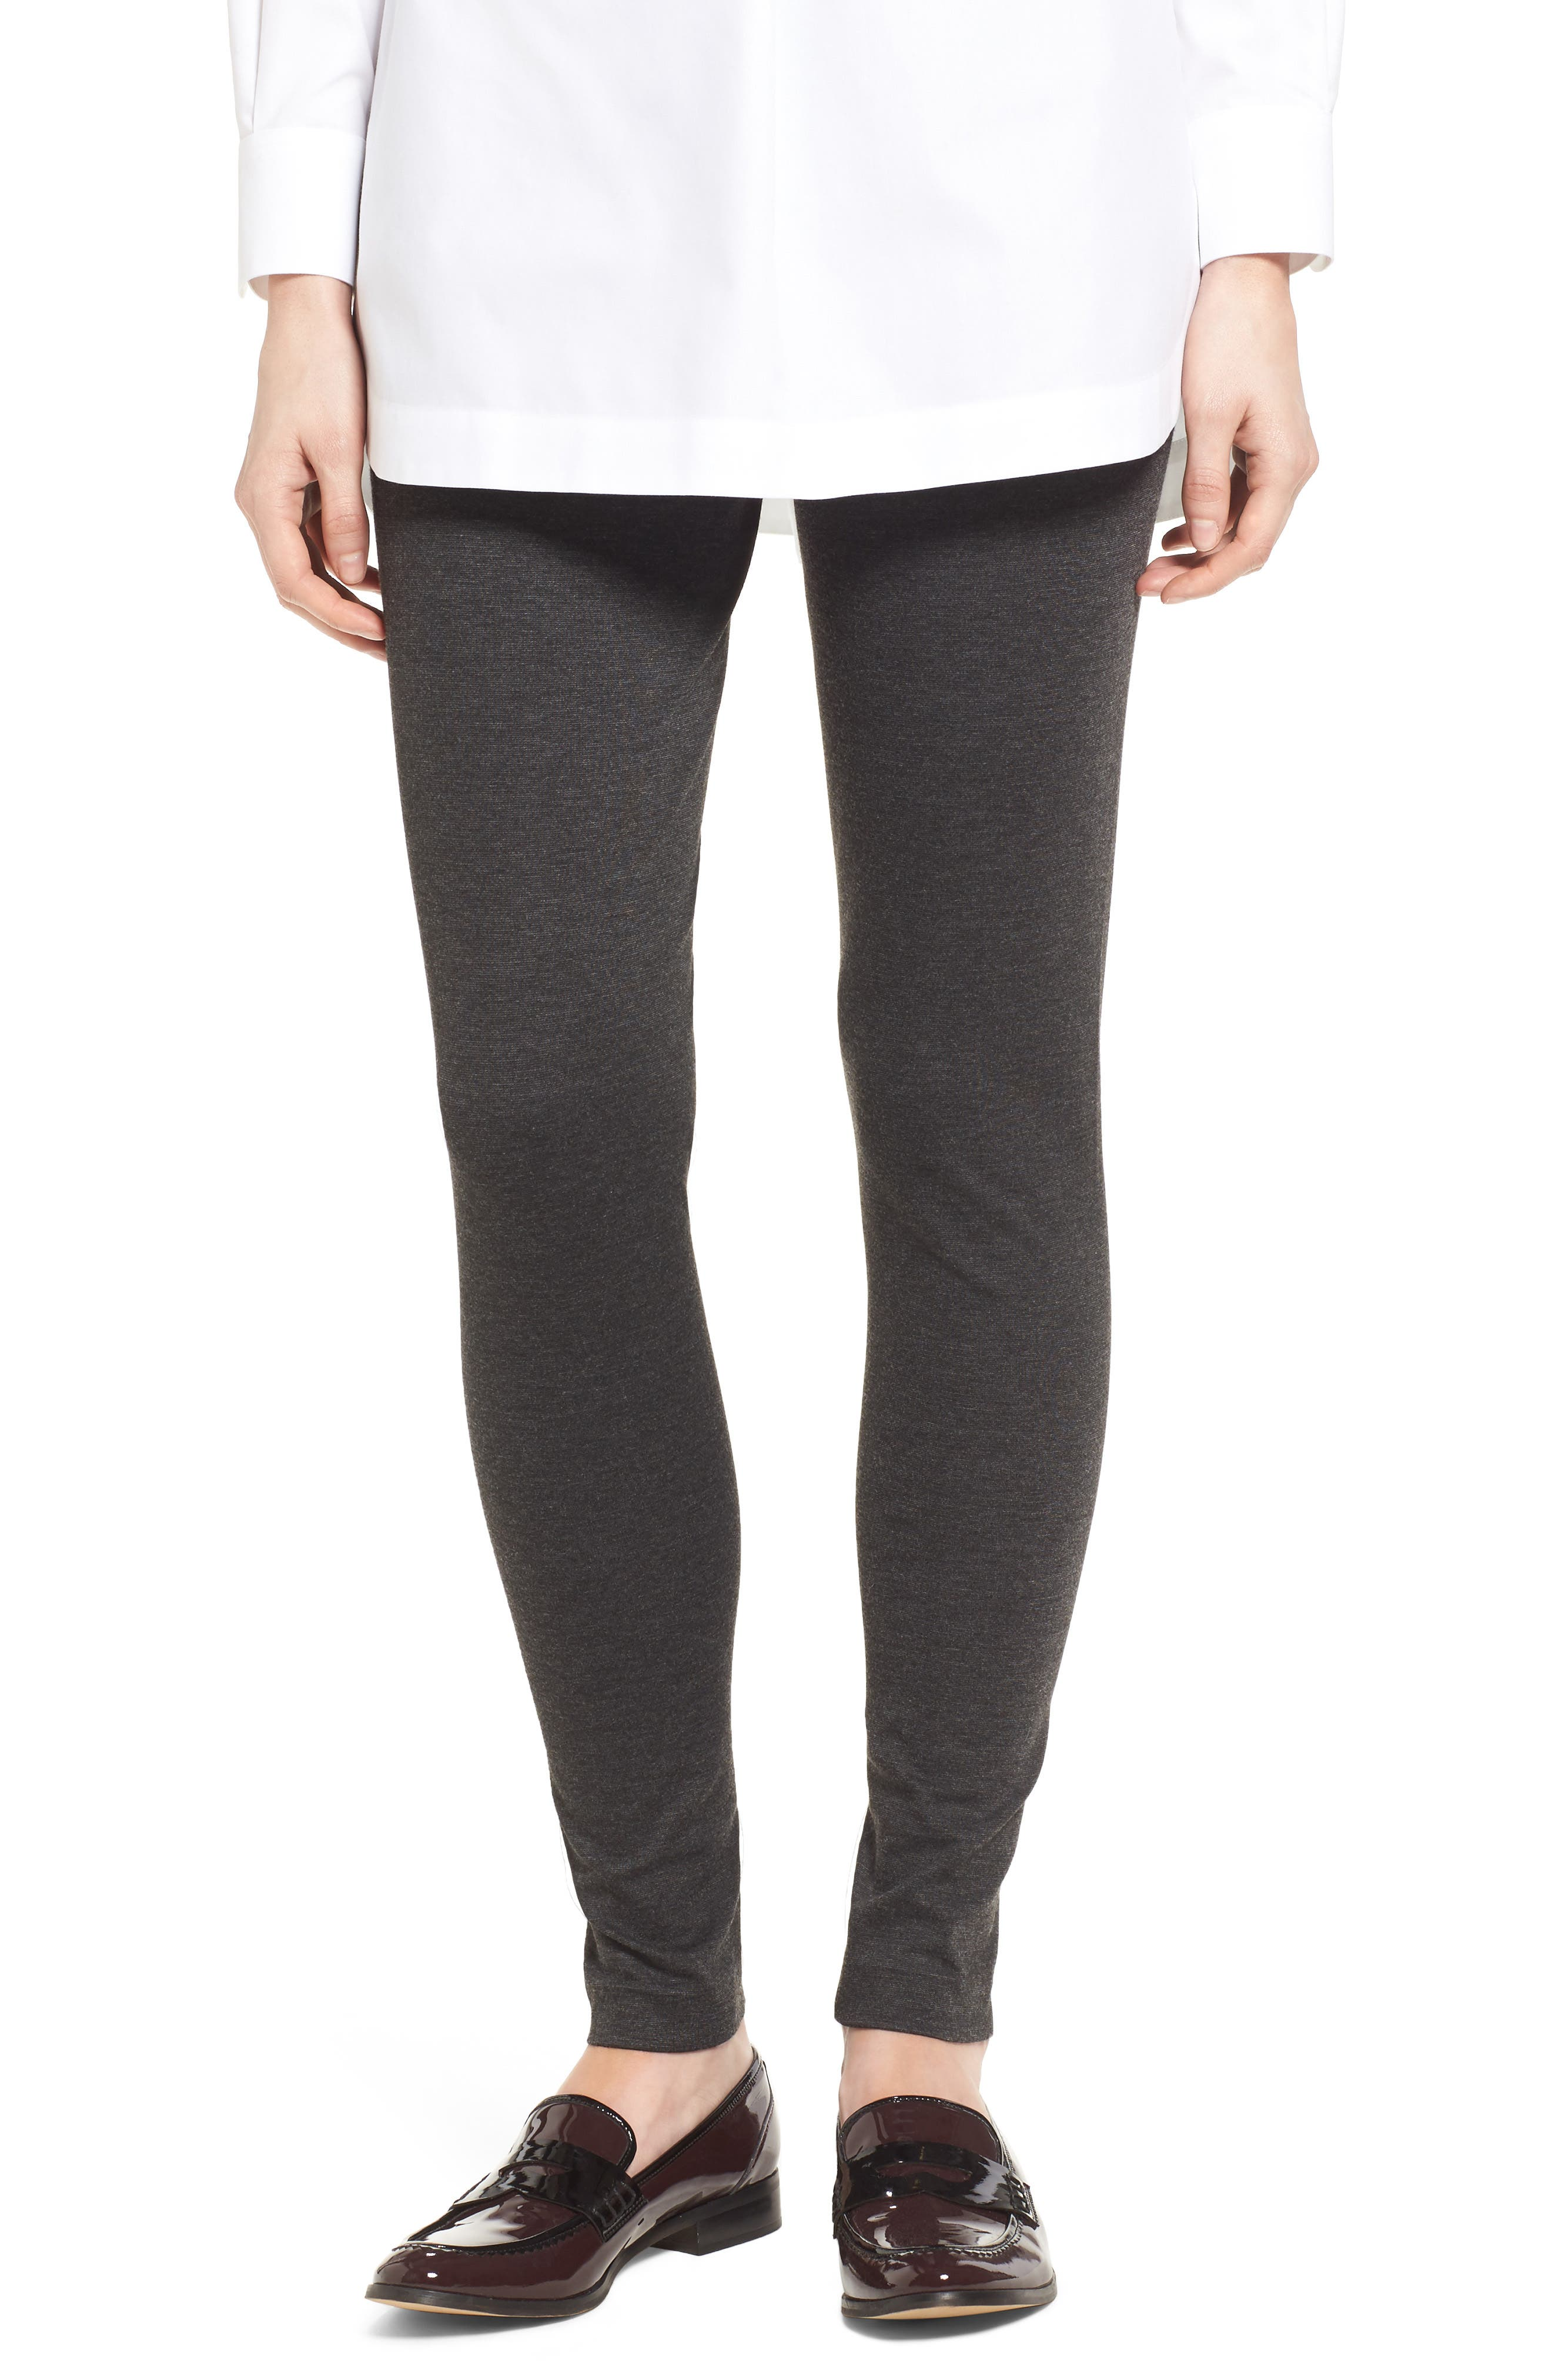 TWO BY VINCE CAMUTO Seamed Back Leggings in Dark Heather Grey